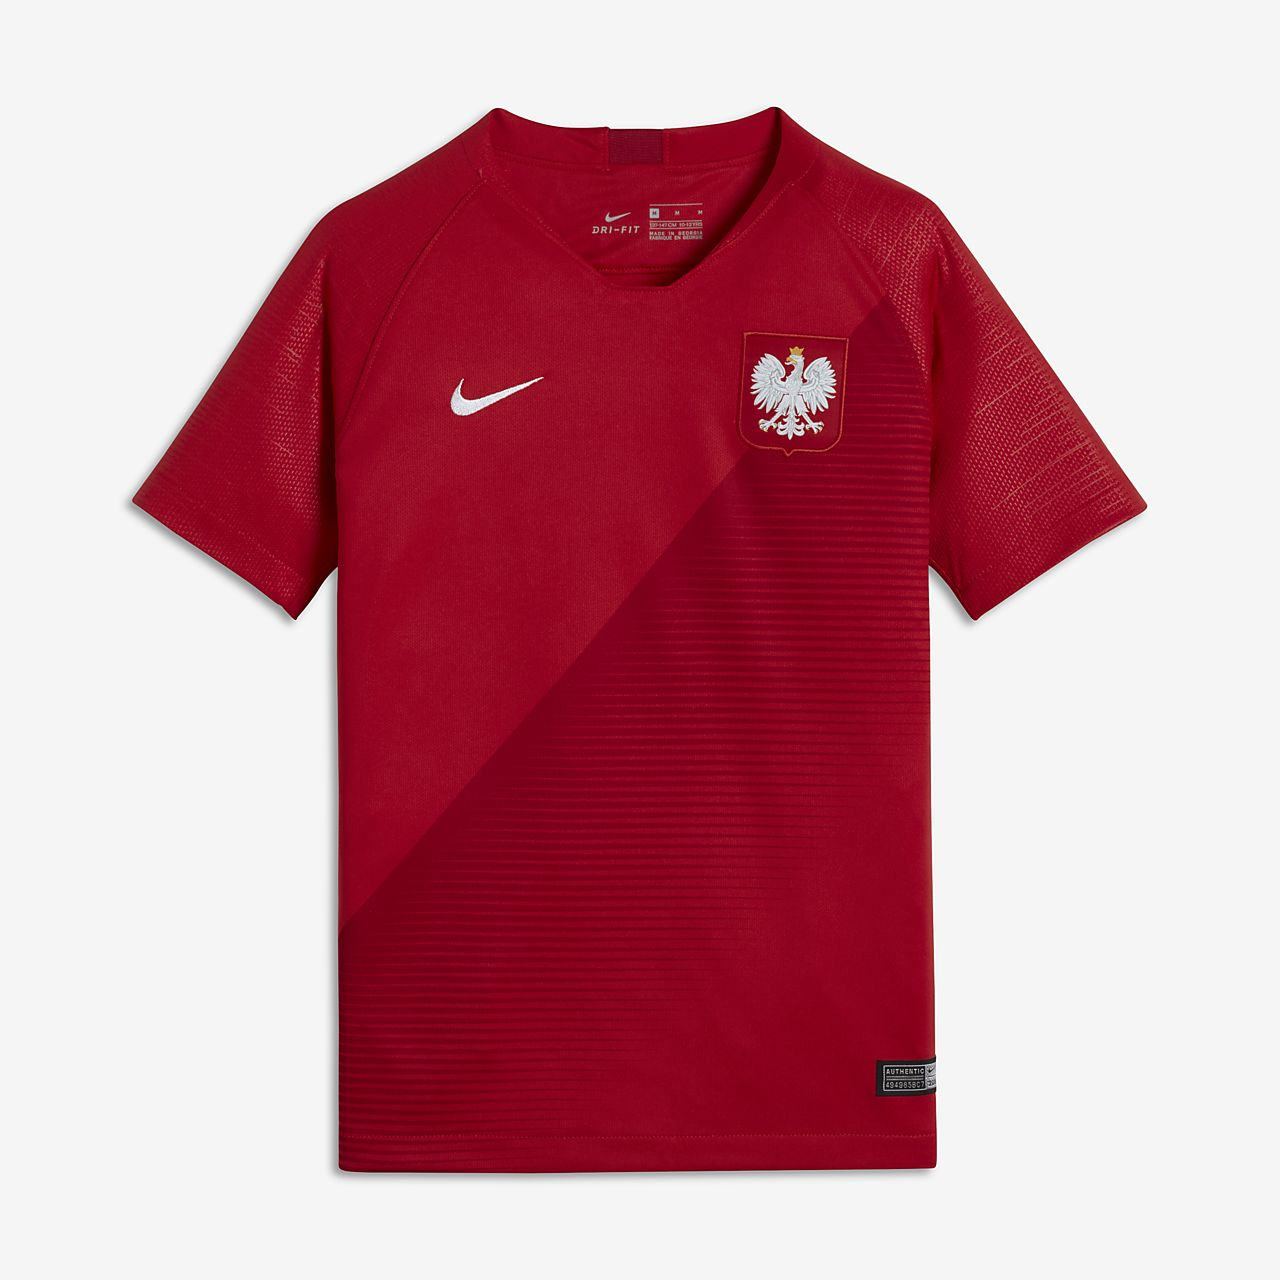 2018 Poland Stadium Away Older Kids' Football Shirt